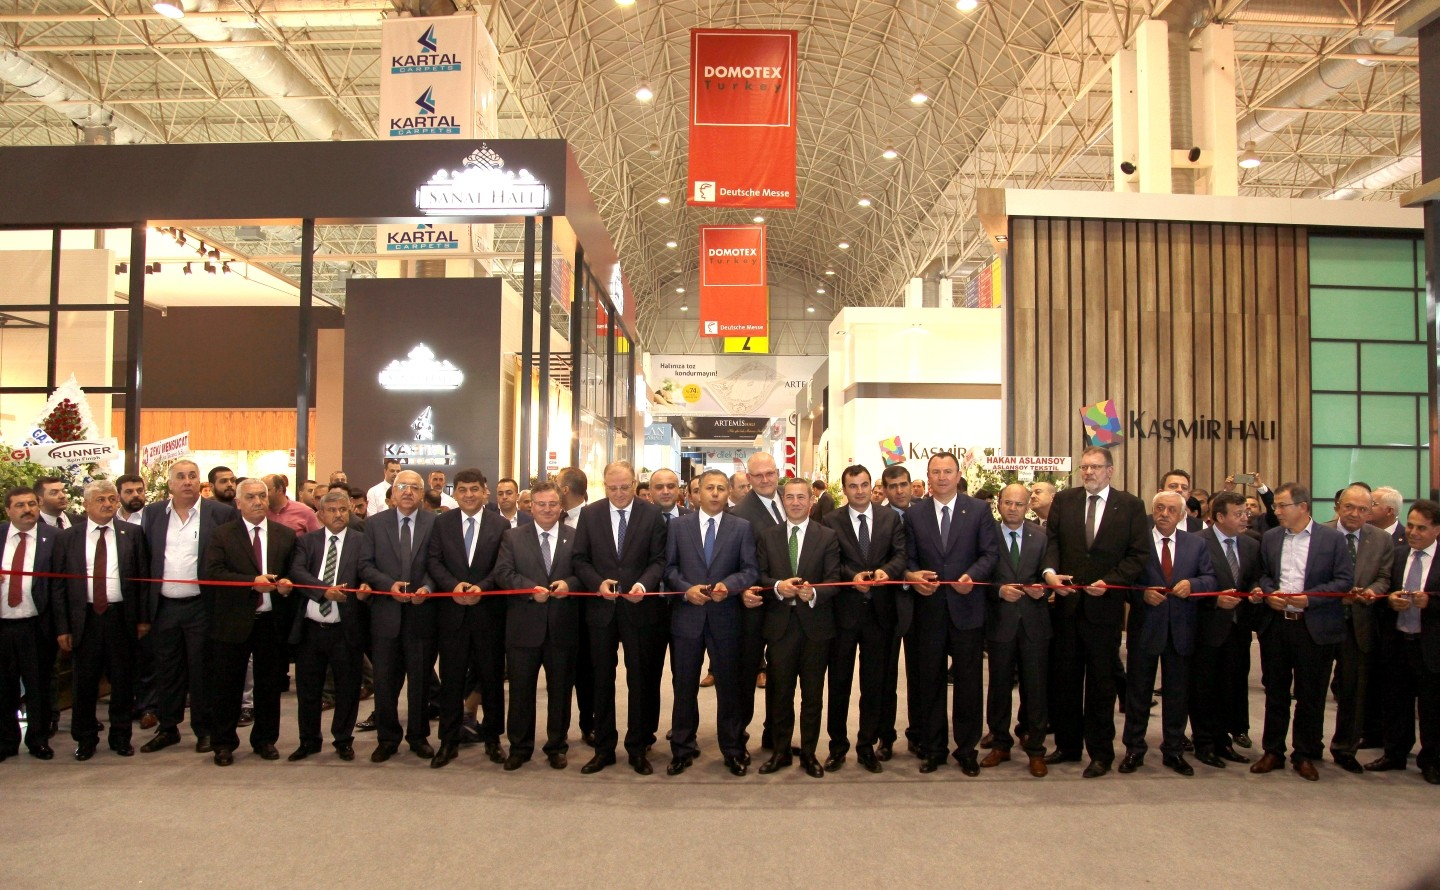 DOMOTEX Turkey 2016